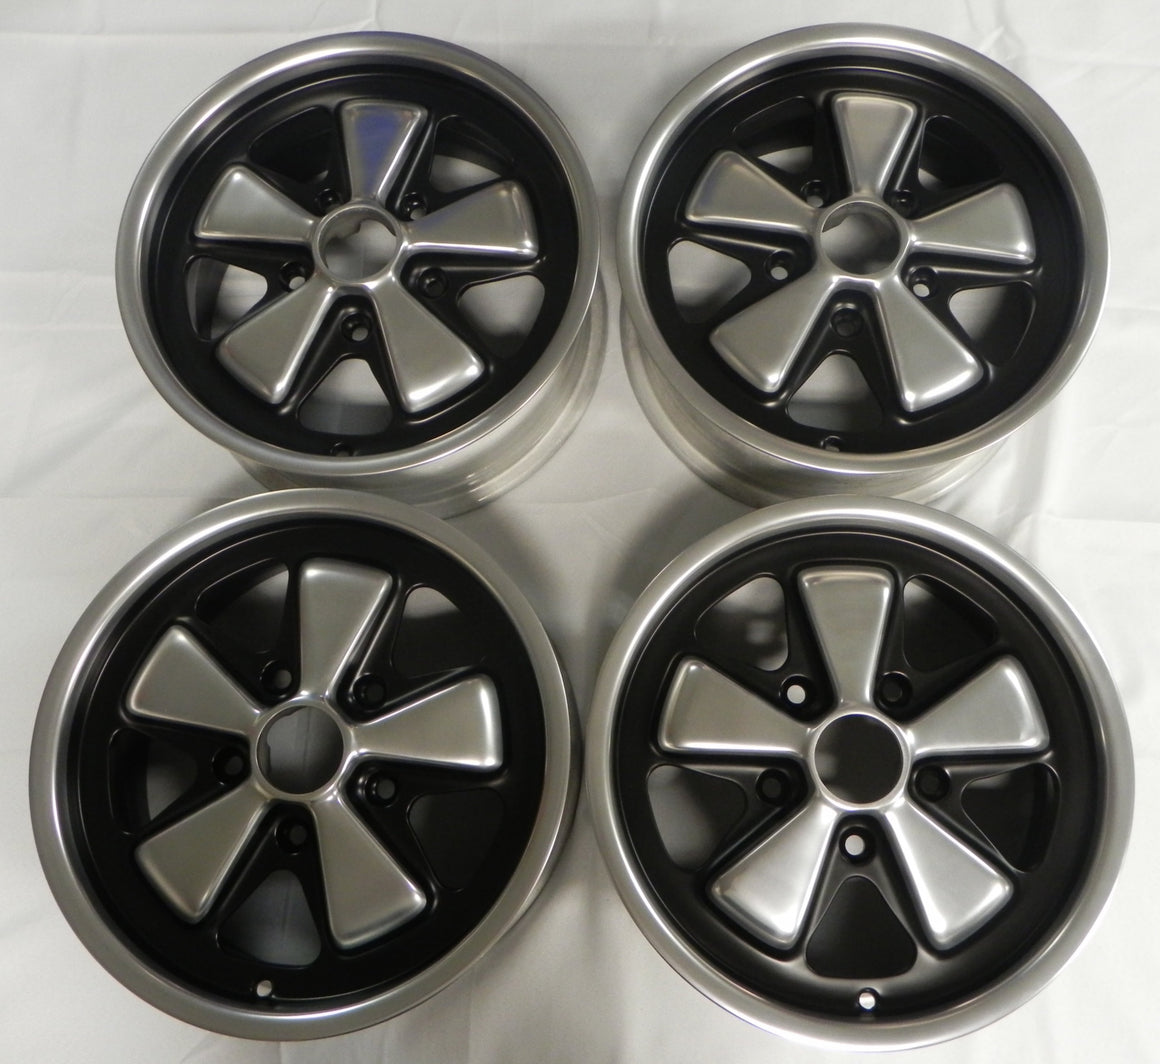 (Refinished) Complete Set of 4 Early 6j x 15 Forged Alloy Flat Six Fuchs Wheels - 1965-89